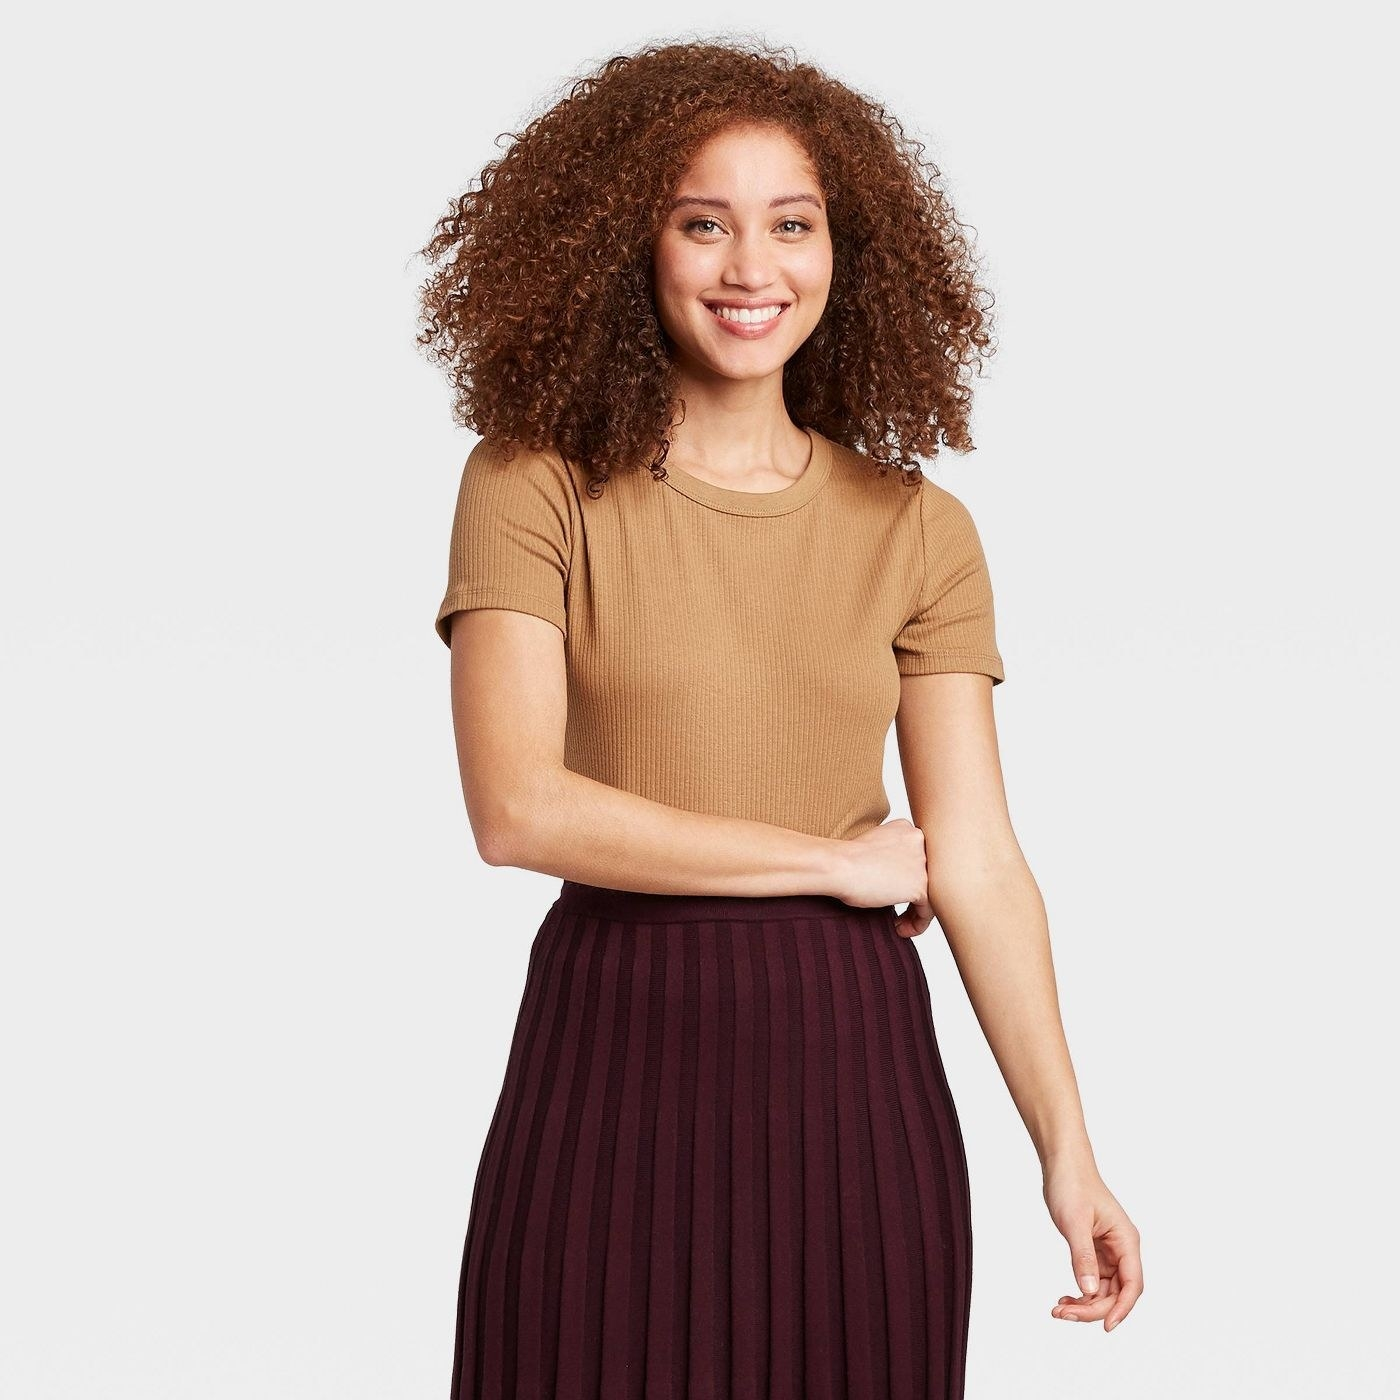 A smiling person wearing the t-shirt in brown and a brown skirt